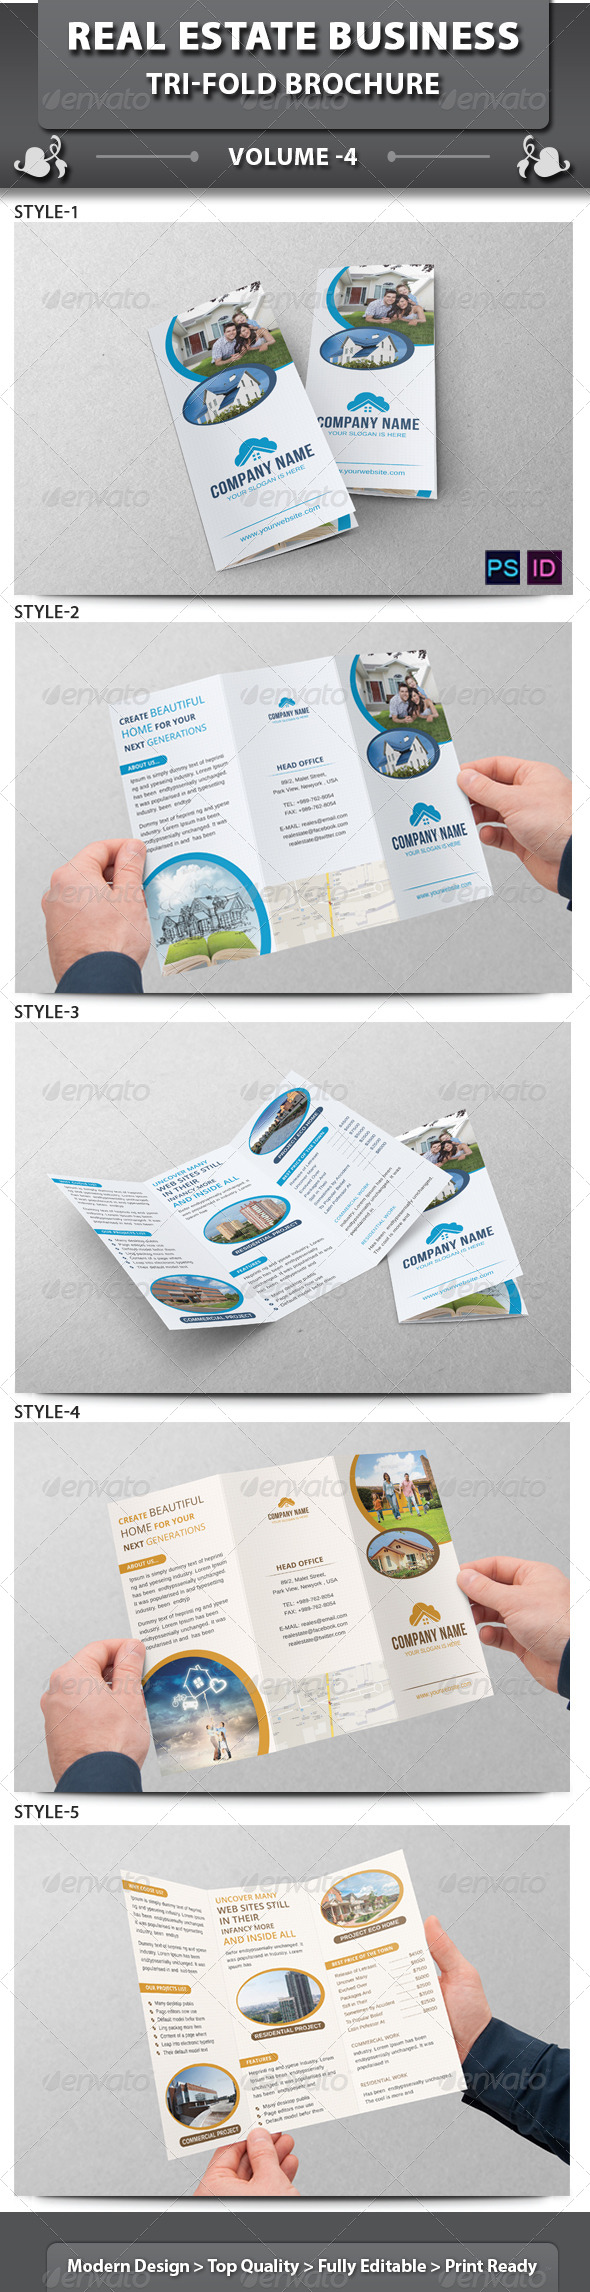 GraphicRiver Real Estate Business Tri-fold Brochure Volume 4 6574745